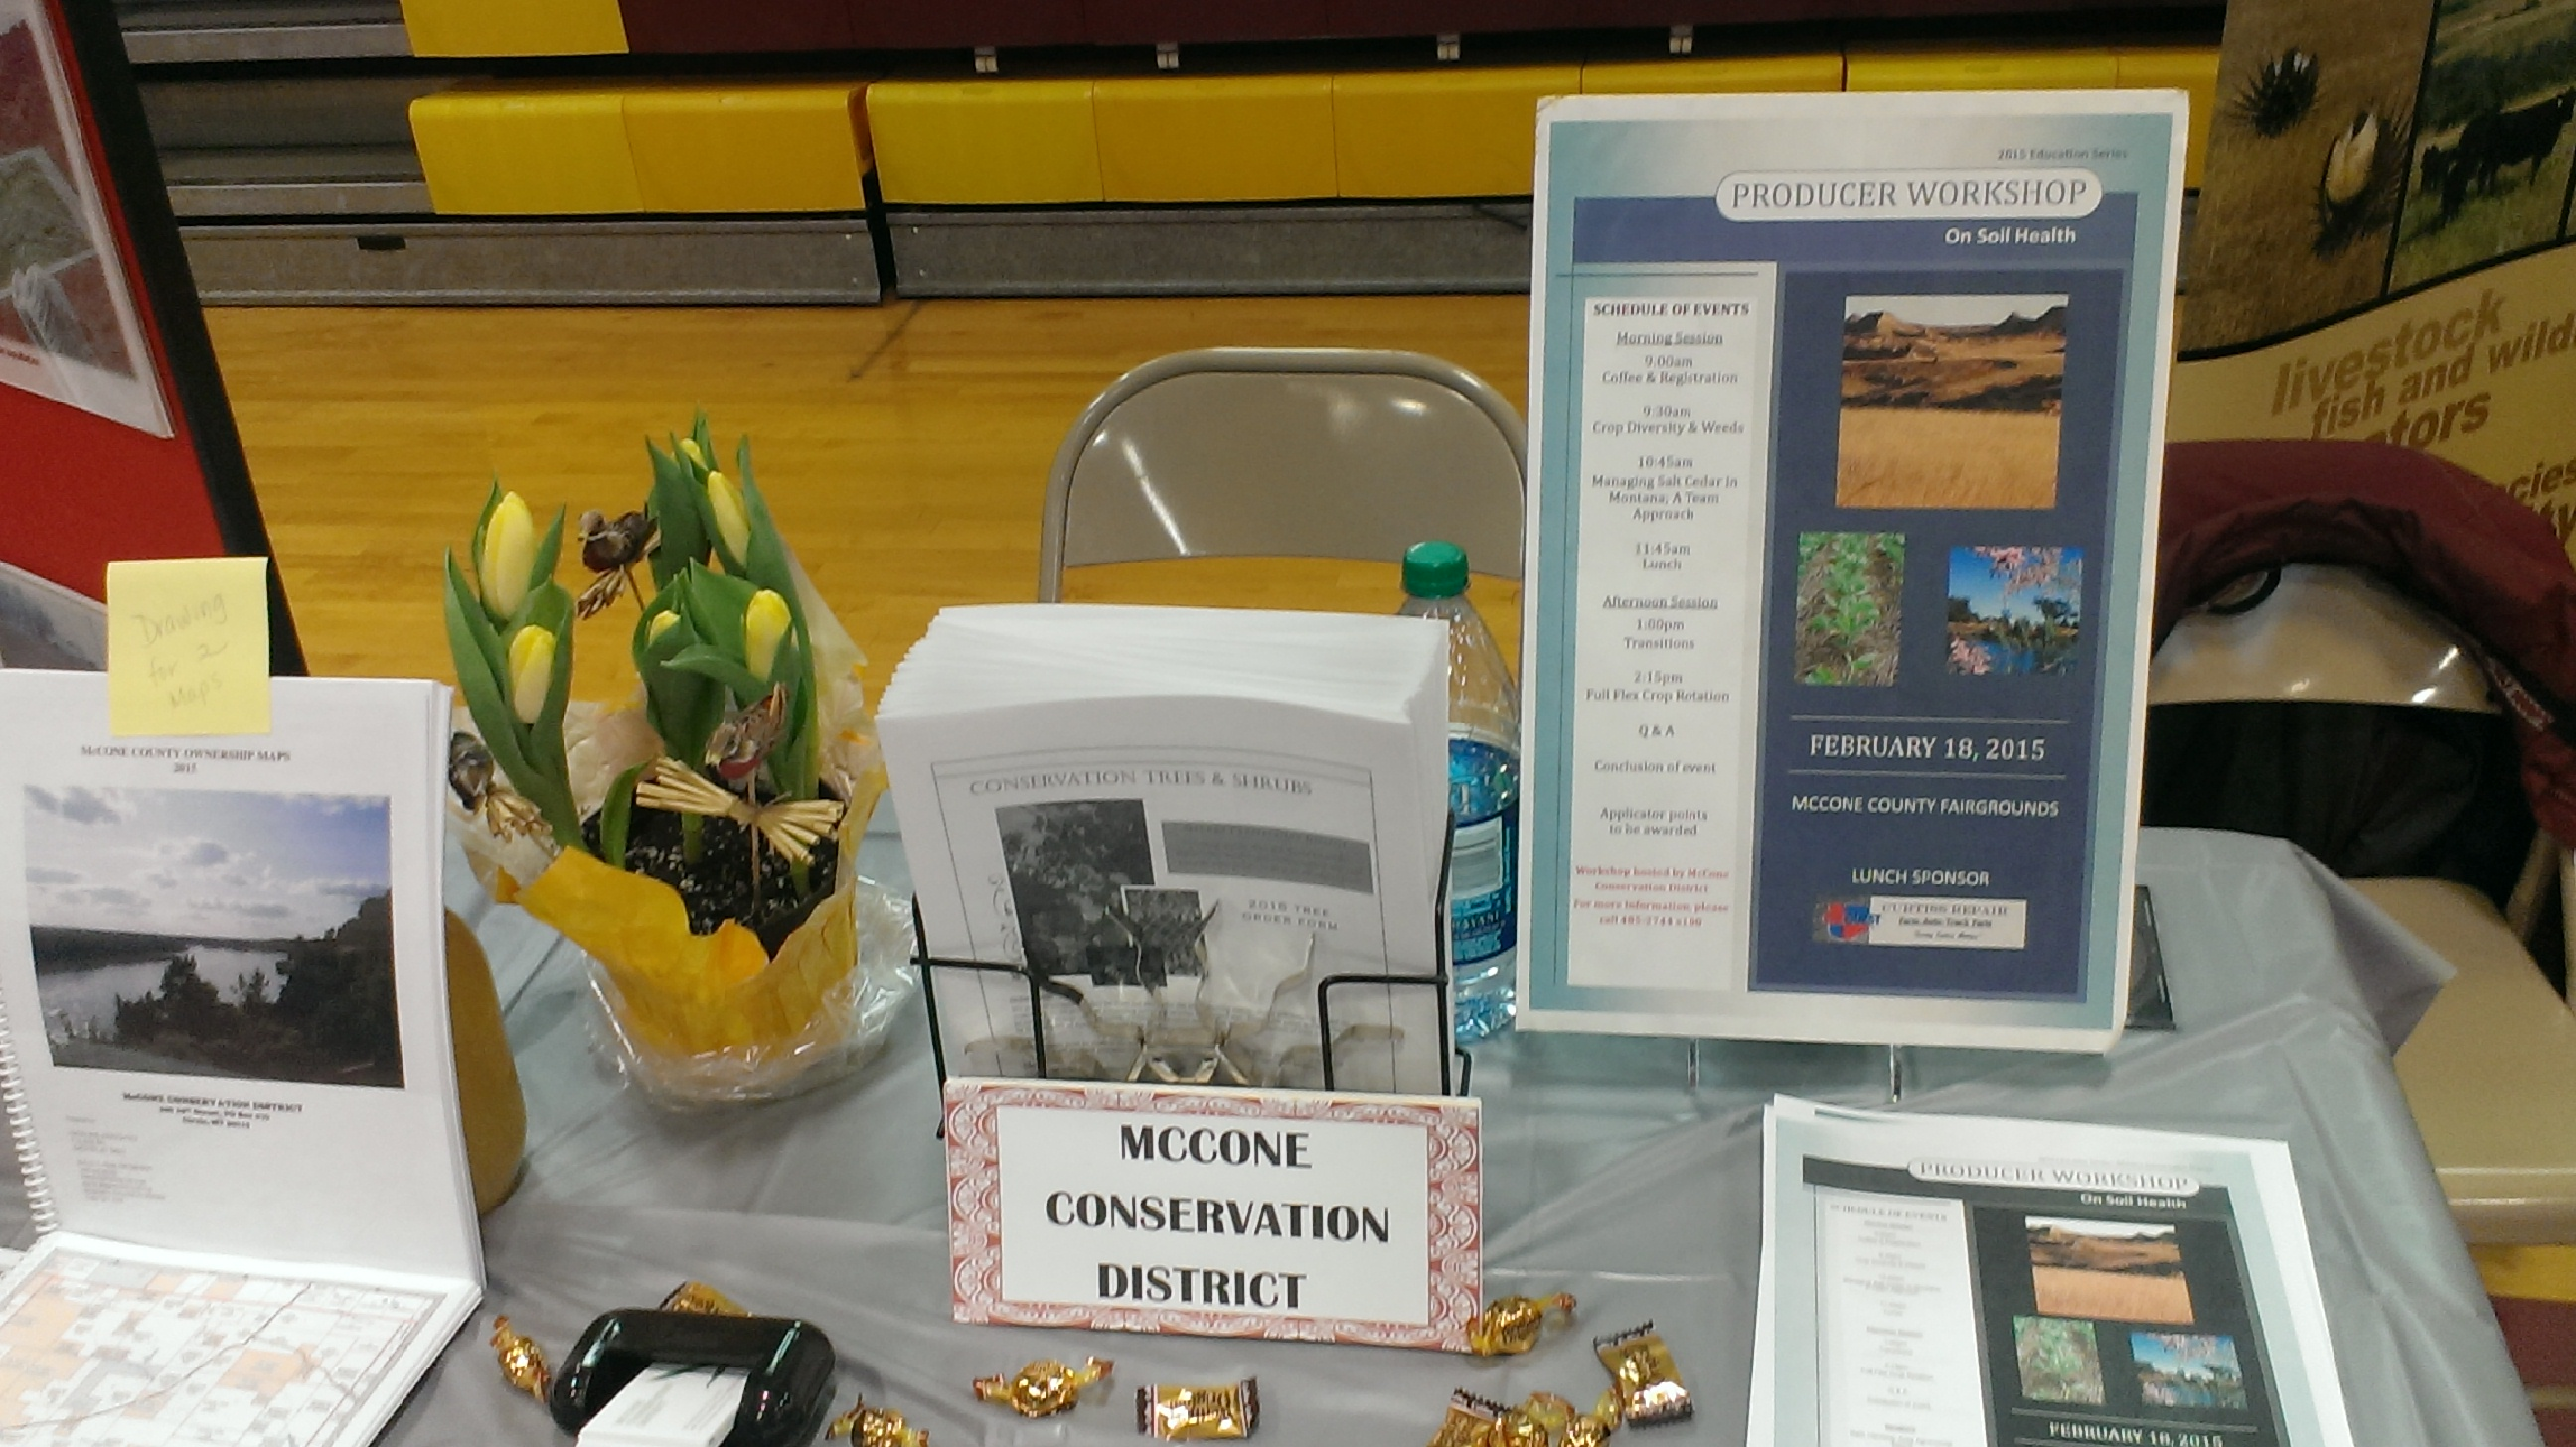 Montana mccone county circle - 2015 1 January 24 Circle Ag Show Mccone County Conservation District